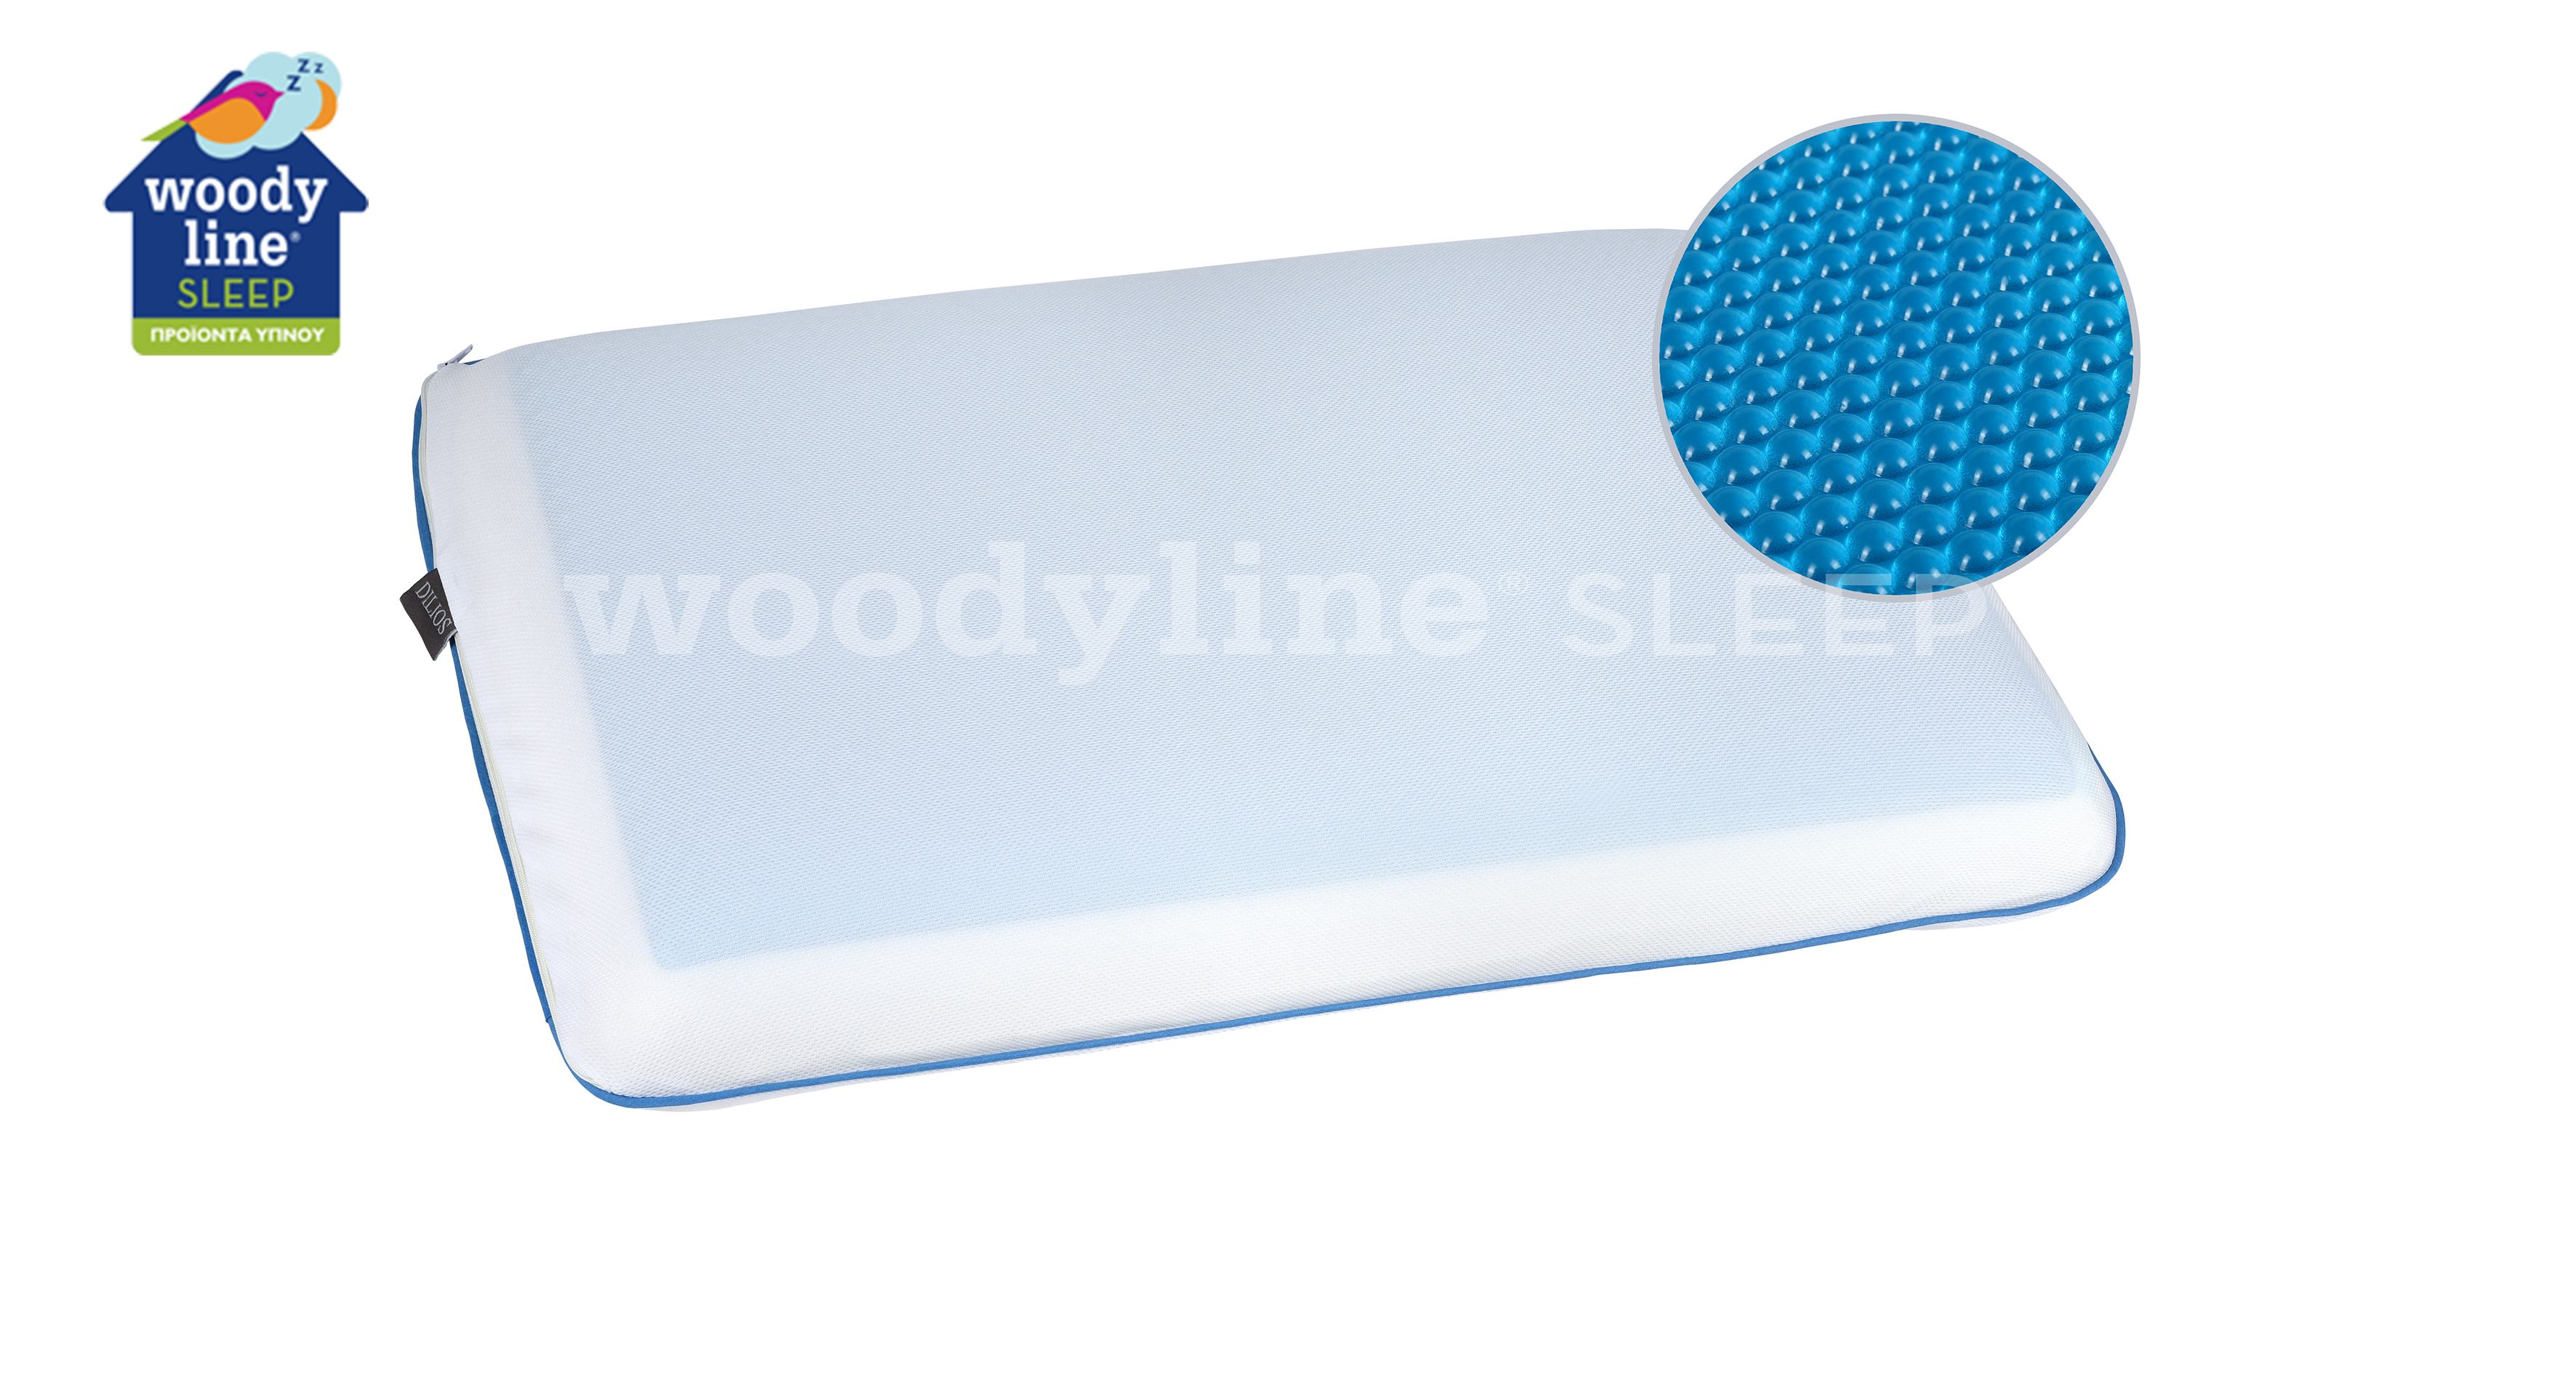 ΜΑΞΙΛΑΡΙ MEMORY FOAM COOL GEL